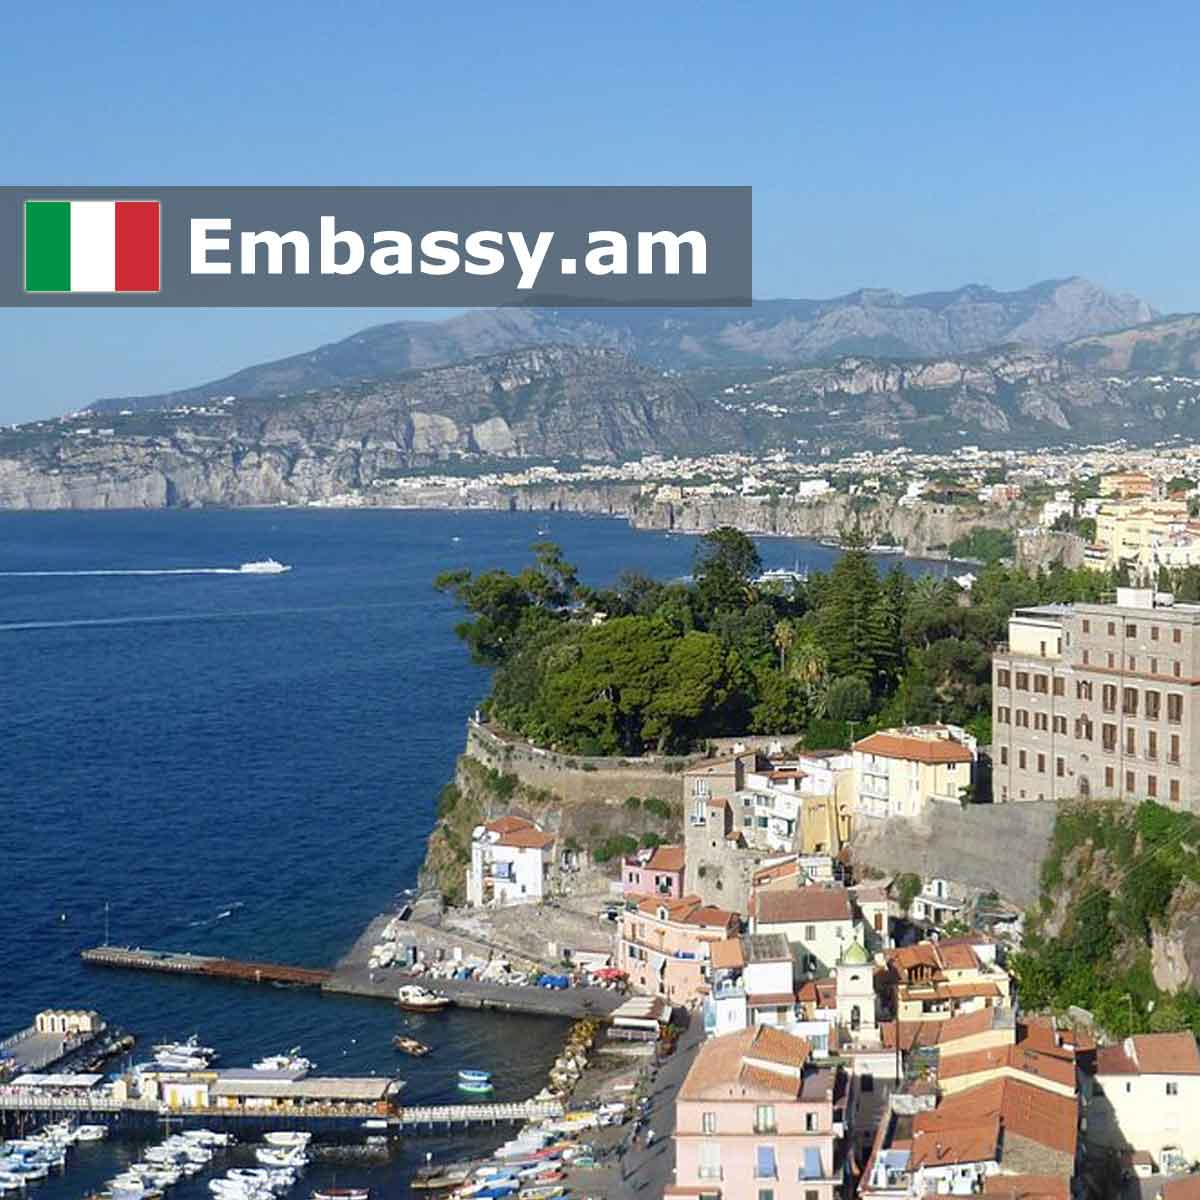 Sorrento - Hotels in Italy - Embassy.am